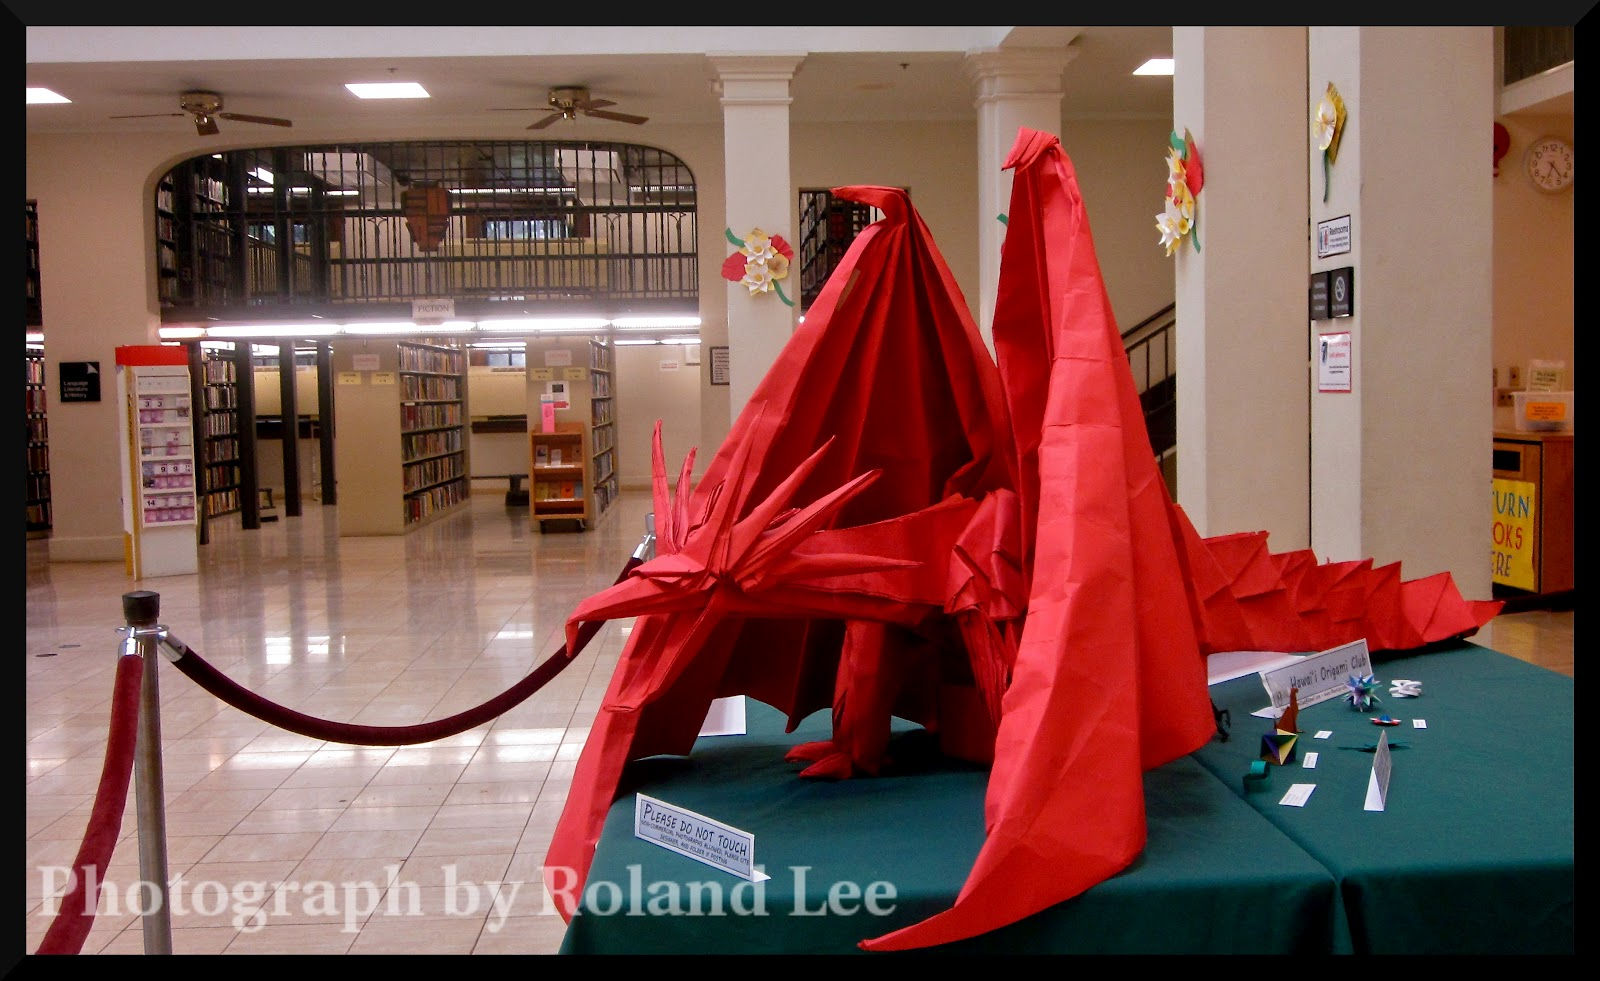 Honolulu Photo Of The Day Origami Dragon Style